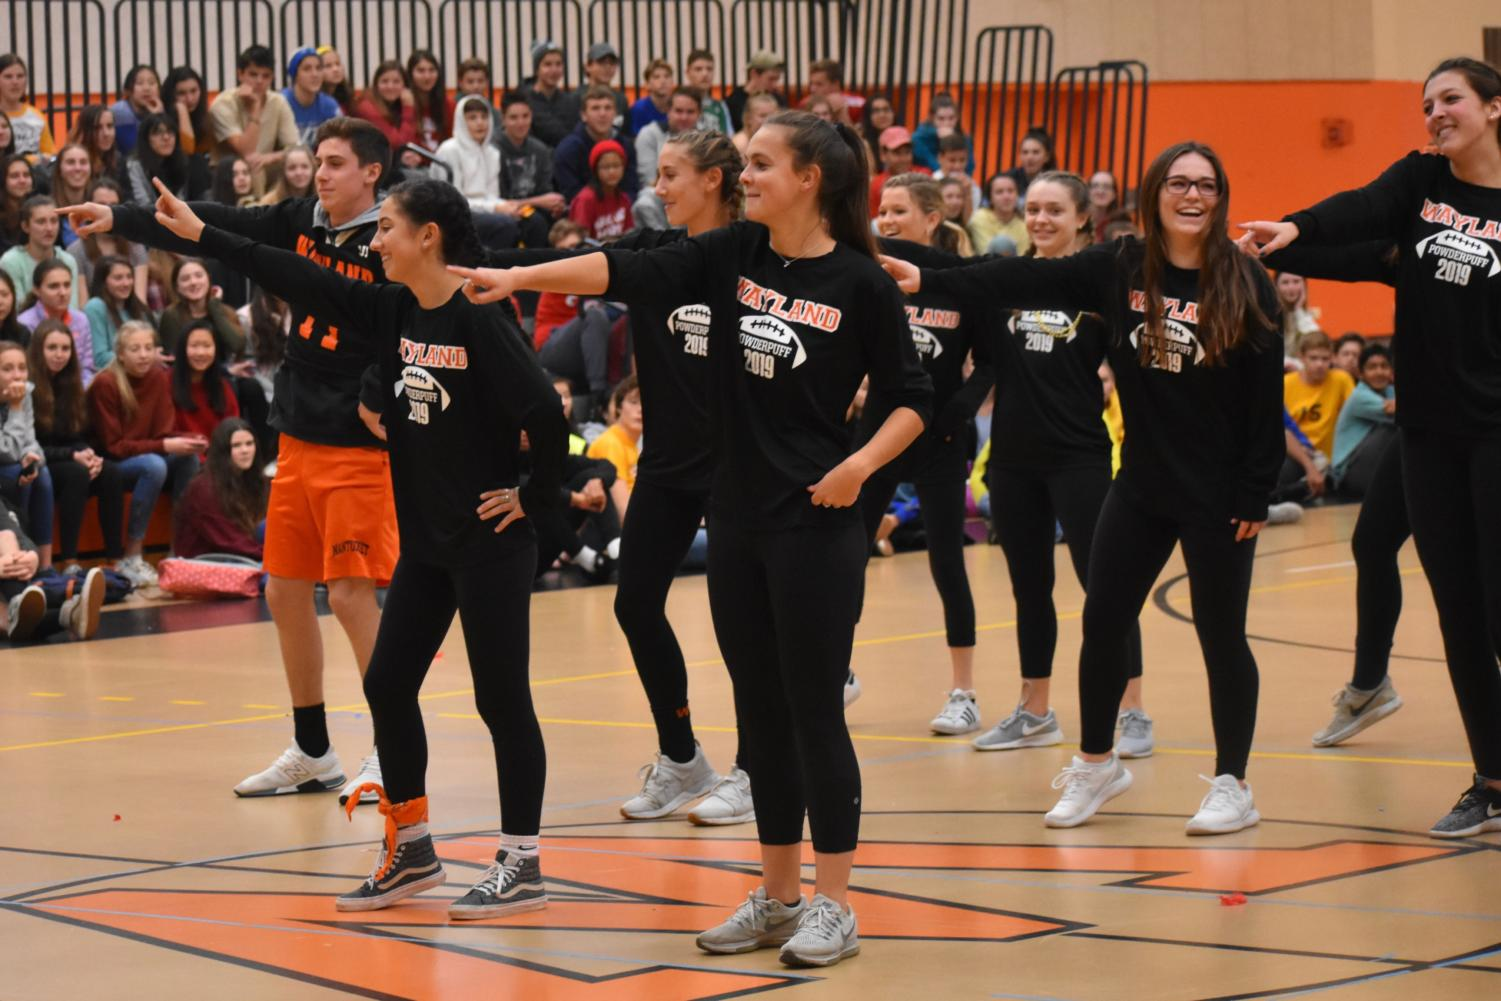 The+seniors+surprise+the+school+with+a+flash+mob.+++Back+row+from+left+to+right%3A+Lauren+Campbell+and+Dale+Lippincott.+Middle+row+from+left+to+right%3A+Jack+Crowley%2C+Eden+Vanslette%2C+Kate+Balicki+and+Haley+Rice.+Front+row+from+left+to+right%3A+Nicole+Erdekian+and+Hannah+Rice.